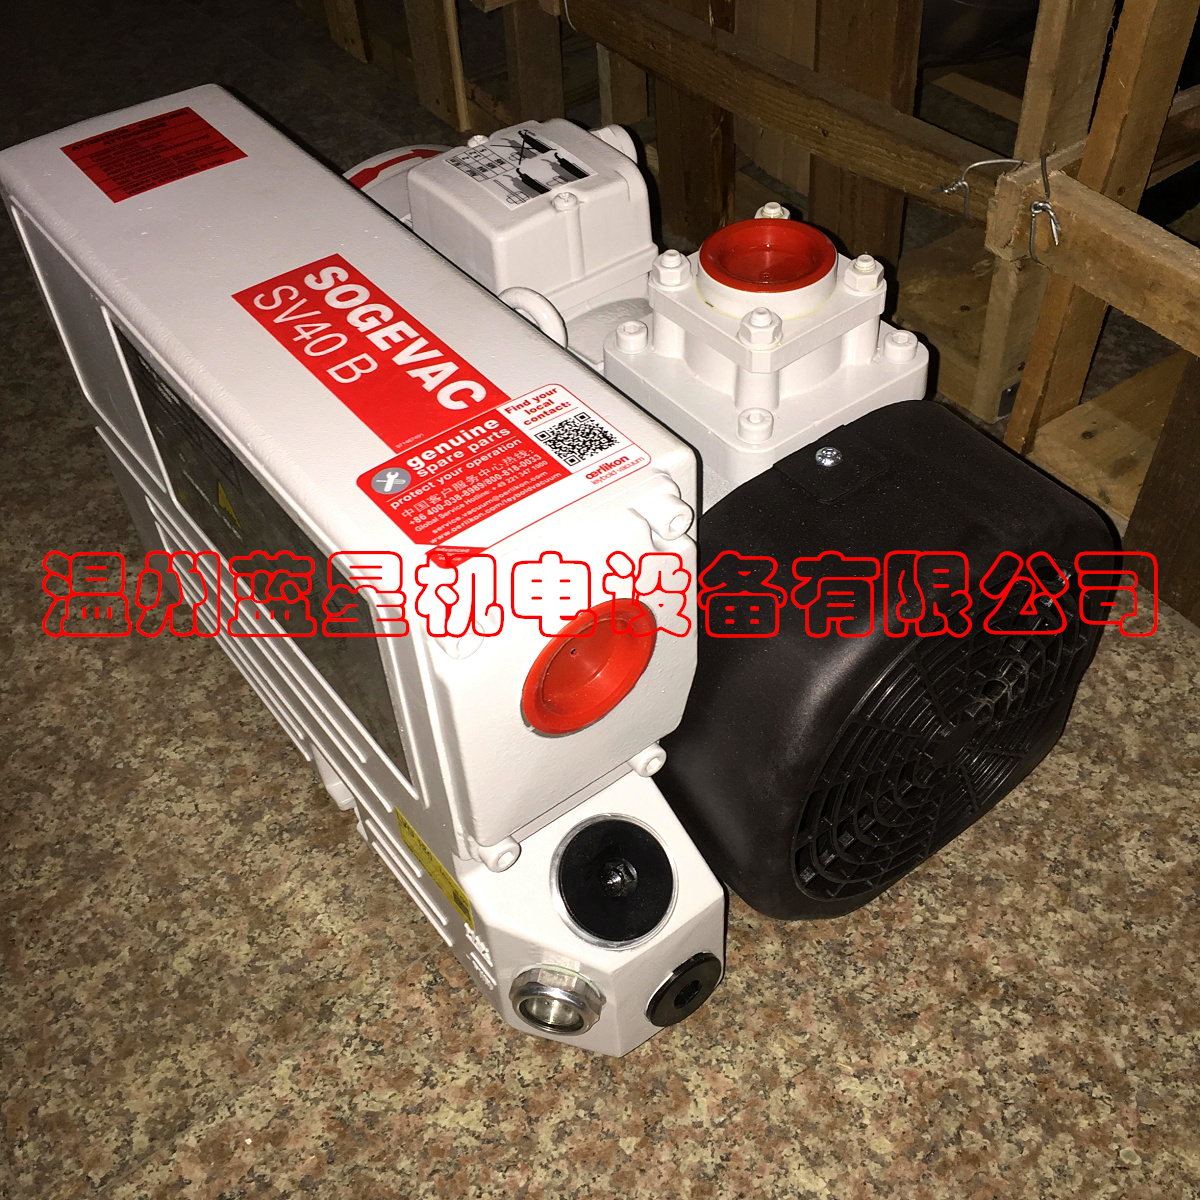 Germany Vacuum Pump SV40B SV-40B Oil Lubricating Rotor (40 cubic meters / h Spot) Three-phase electric 380VGermany Vacuum Pump SV40B SV-40B Oil Lubricating Rotor (40 cubic meters / h Spot) Three-phase electric 380V